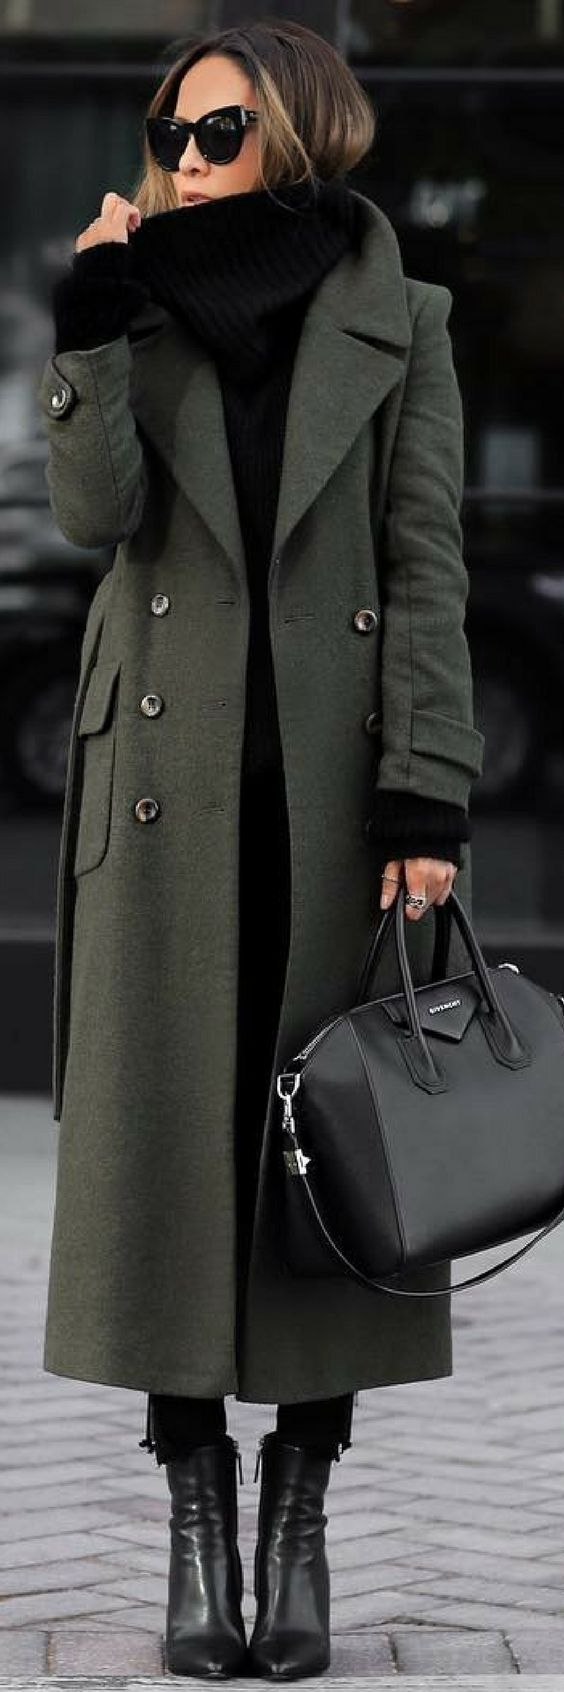 How To Style The Best 5 Attractive Autumn Outfits